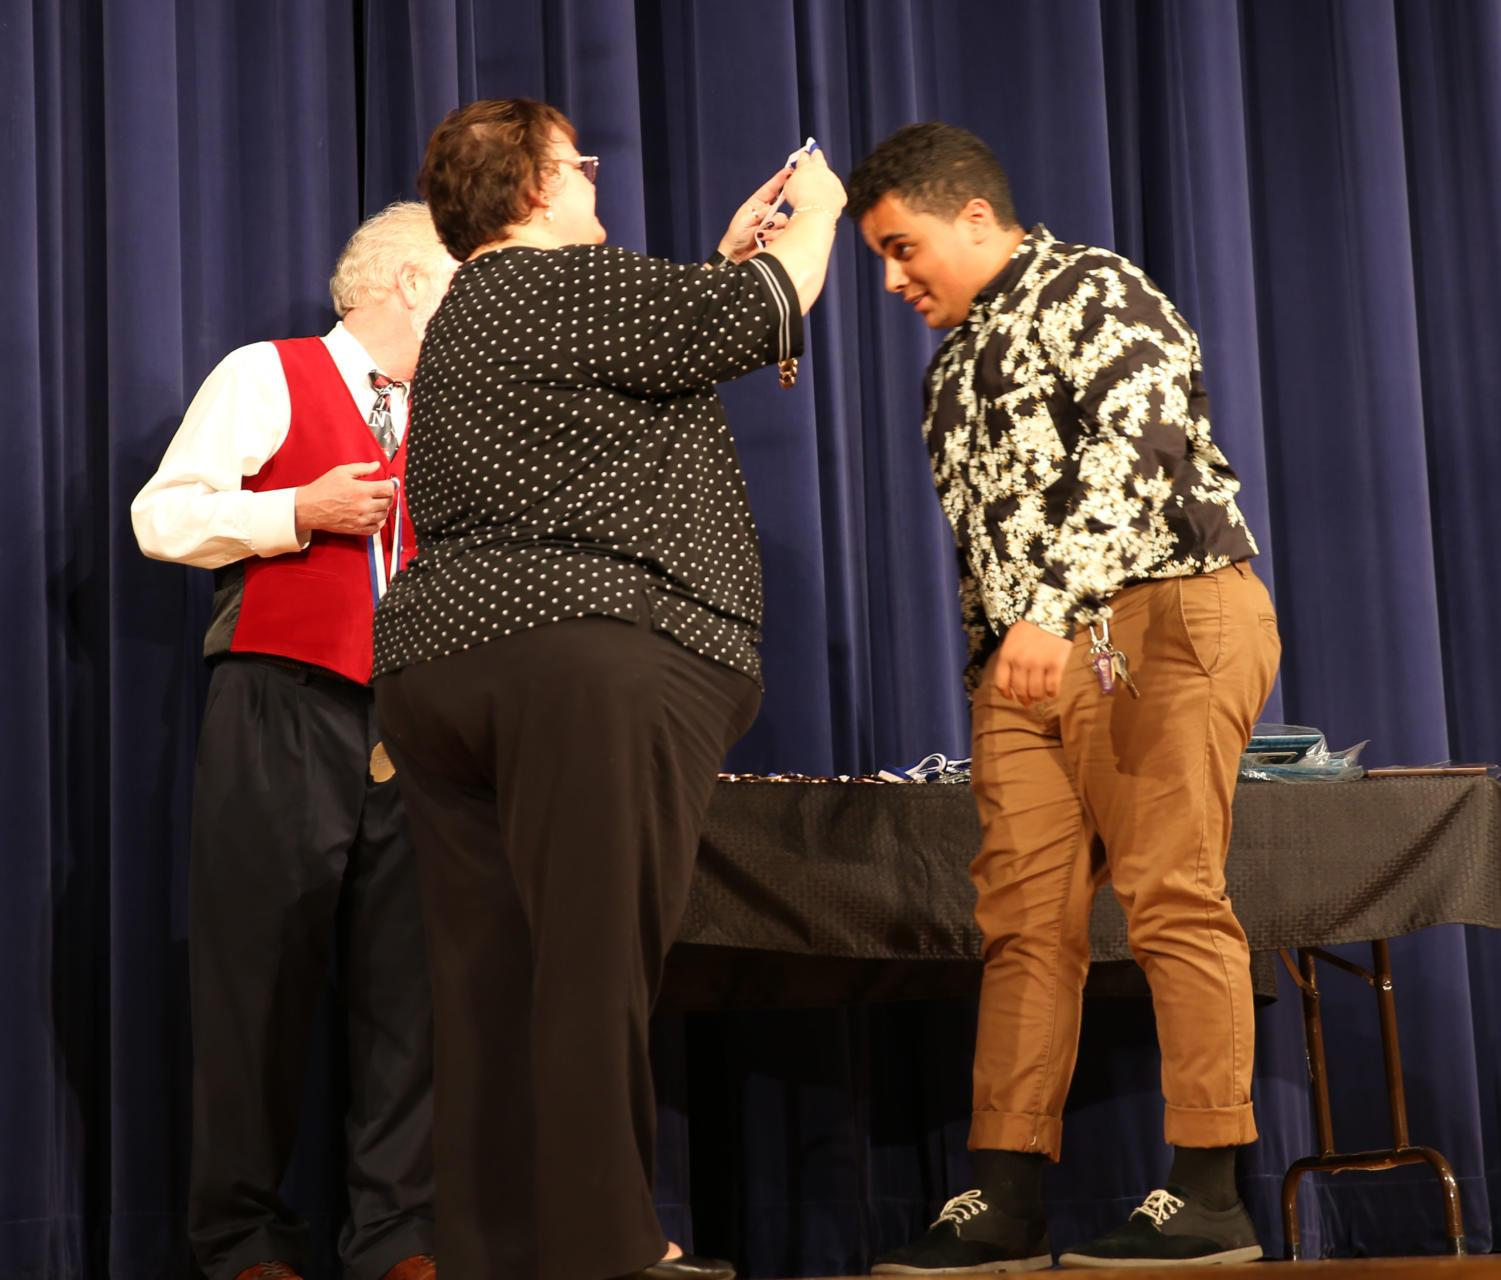 Principal+Cynthia+Prieto+puts+the+medal+around+the+neck+of+senior+Leomar+Lopez+after+he+is+recognized.+